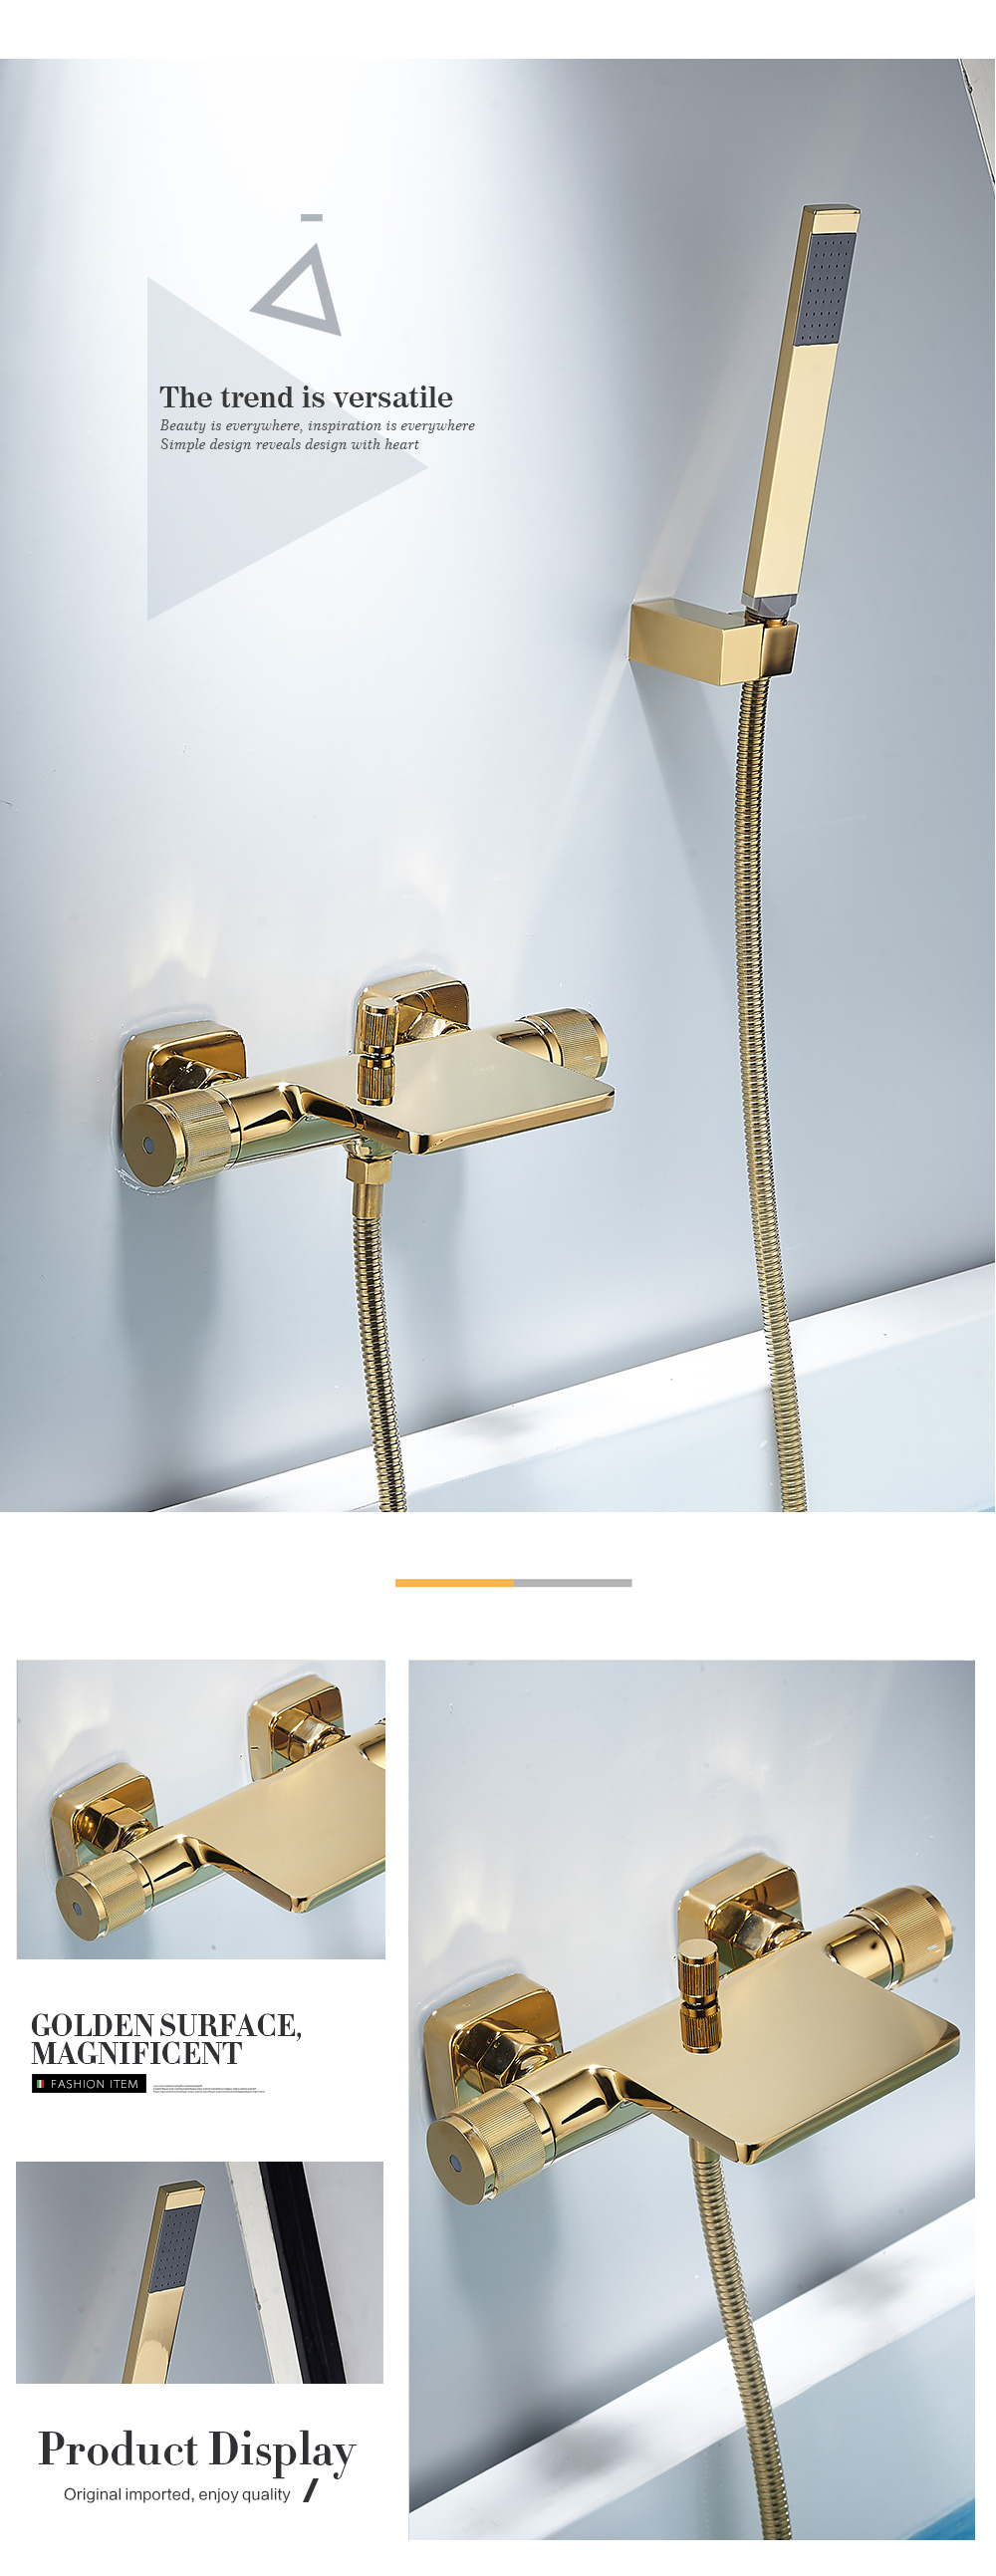 H1133a2503bfe43d3b6ffd56044e4430c5 Bathtub Shower Faucet Mixer Solid Brass Black Wall Mount Shower Faucet With Hand Shower Bathroom Waterfall Bathub Faucet WB1620